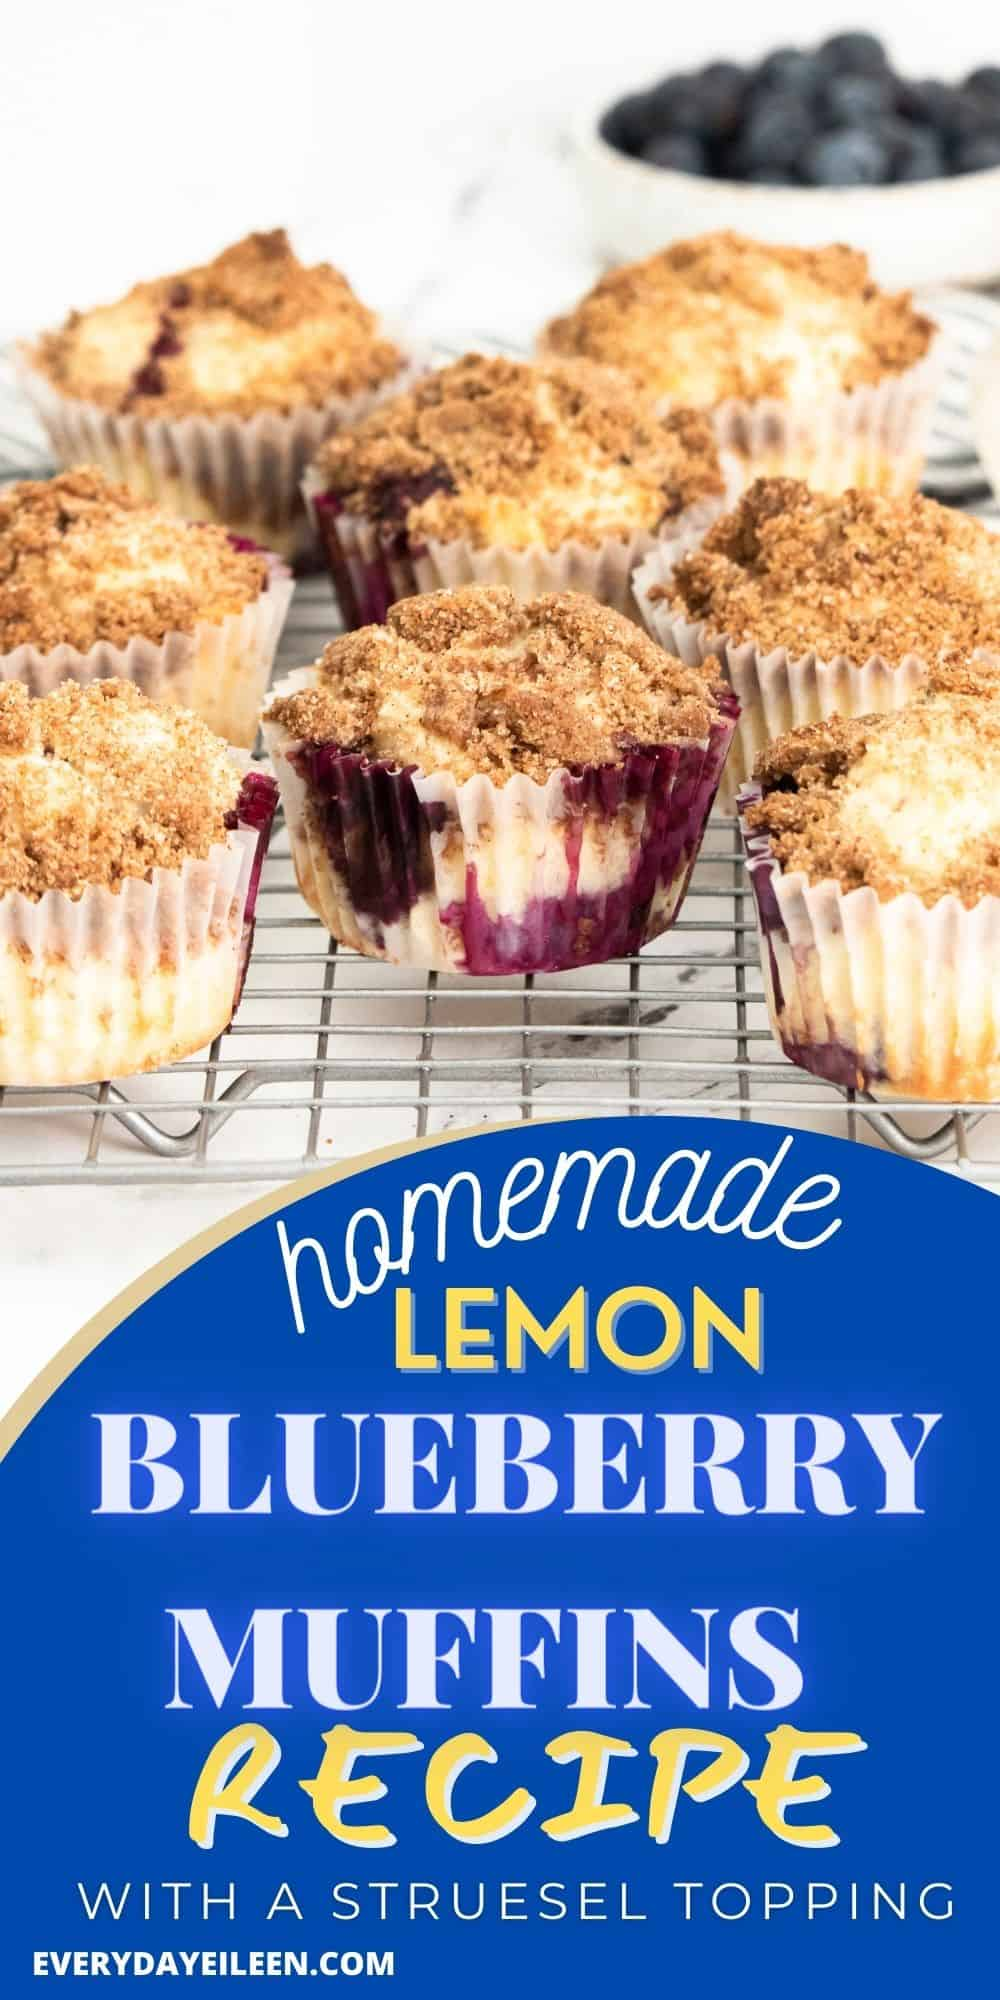 Lemon Blueberry Muffins, made with Greek yogurt for a quick fluffy and moist muffin. Making homemade muffins is easy with just a few ingredients for delicious results. Make a double batch and freeze some for later. Perfect for breakfast, brunch, Holiday brunch, Mother's Day, and Easter. via @everydayeileen